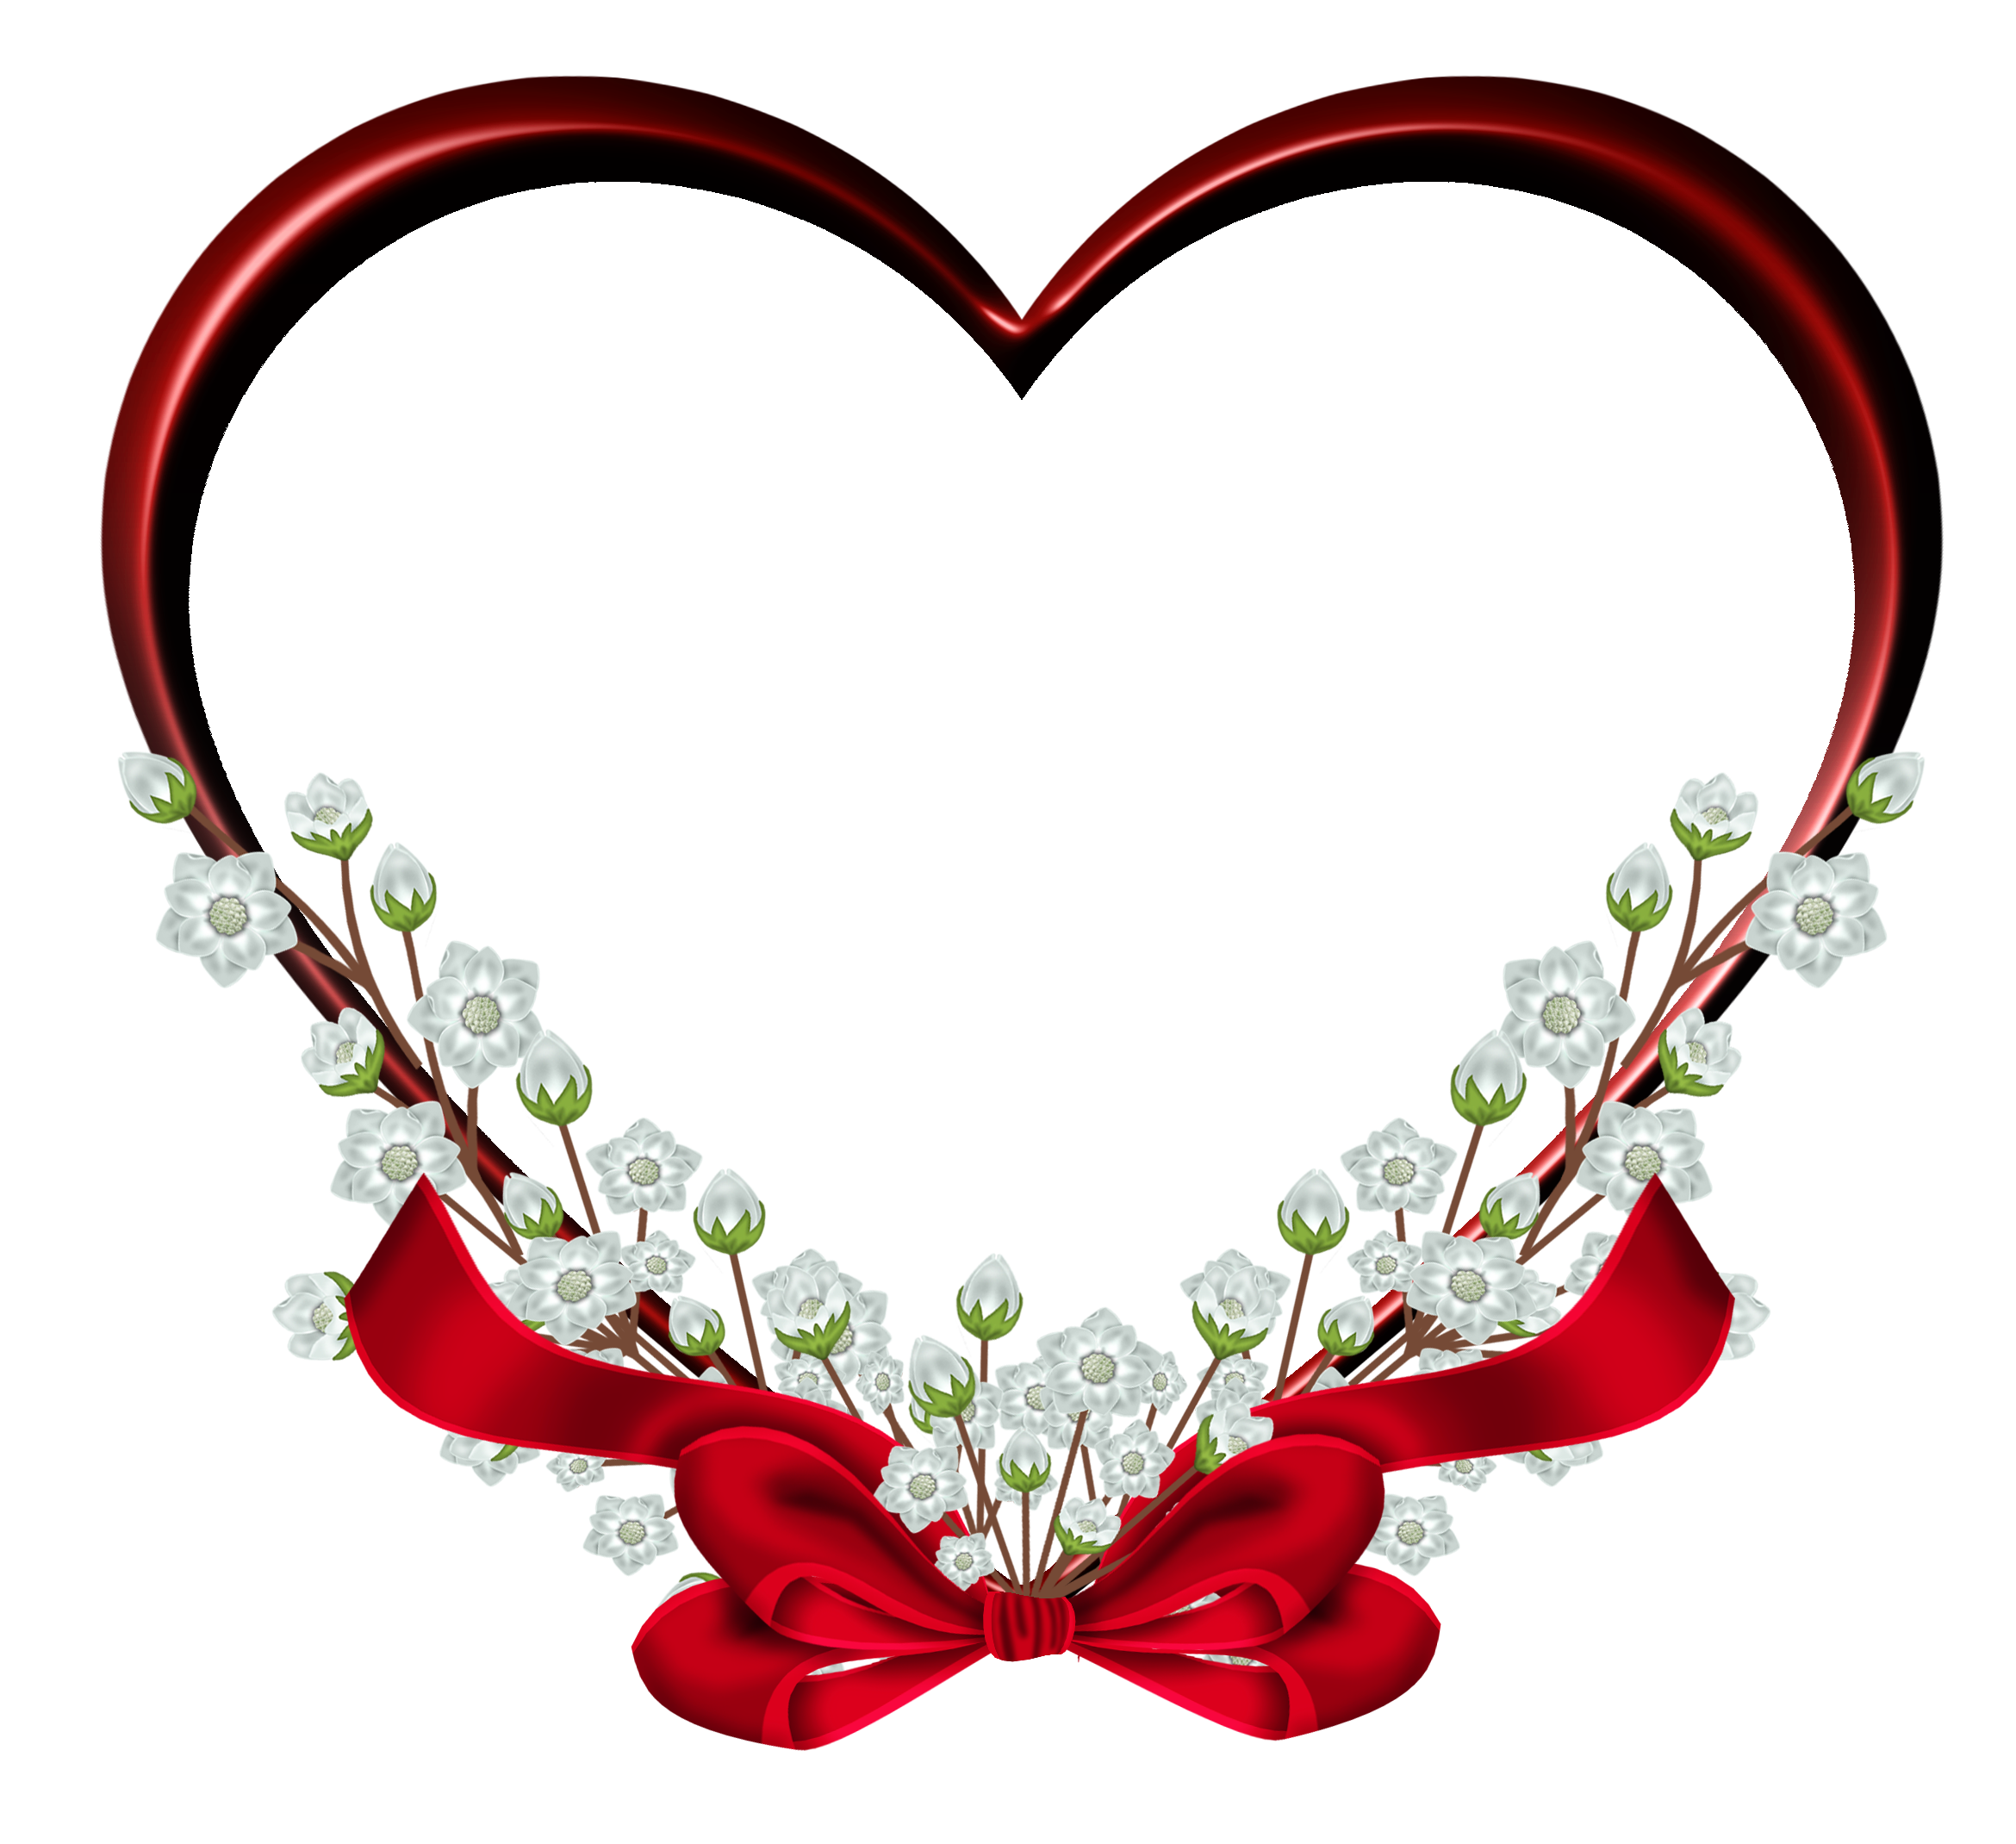 heart floral frame valentine - photo #40